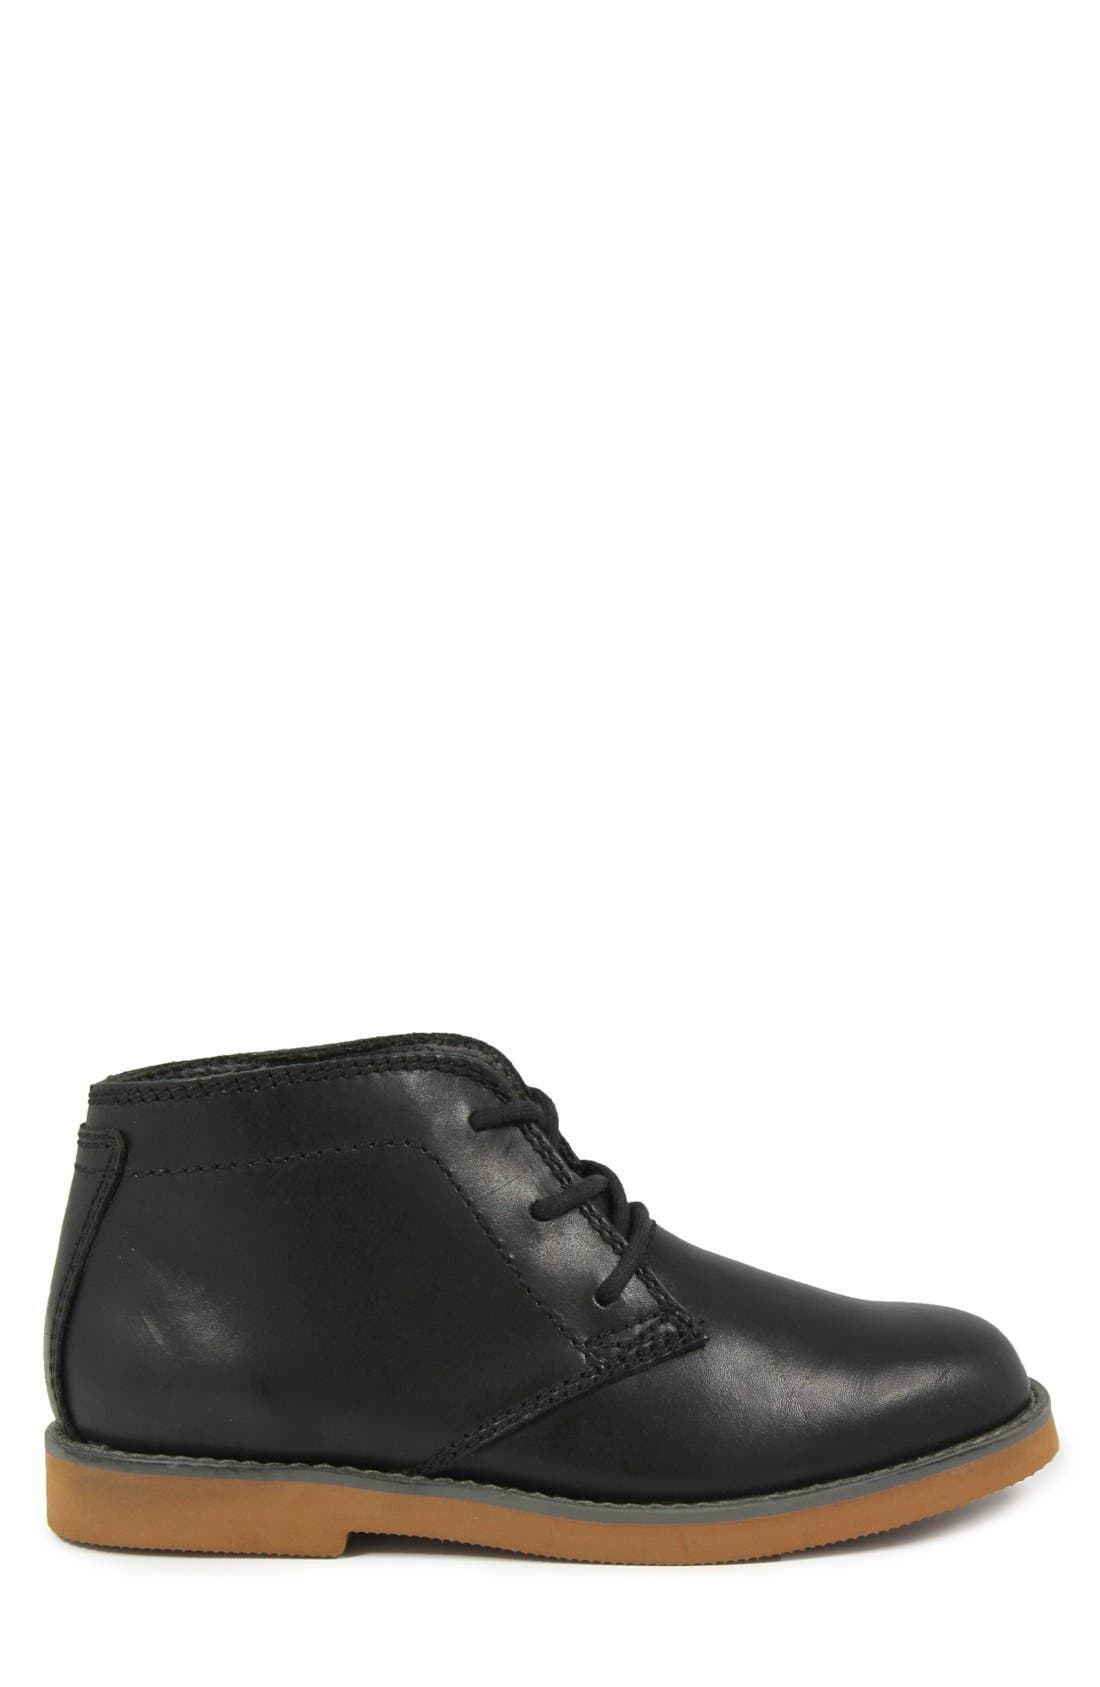 'Bucktown' Chukka Boot,                             Alternate thumbnail 23, color,